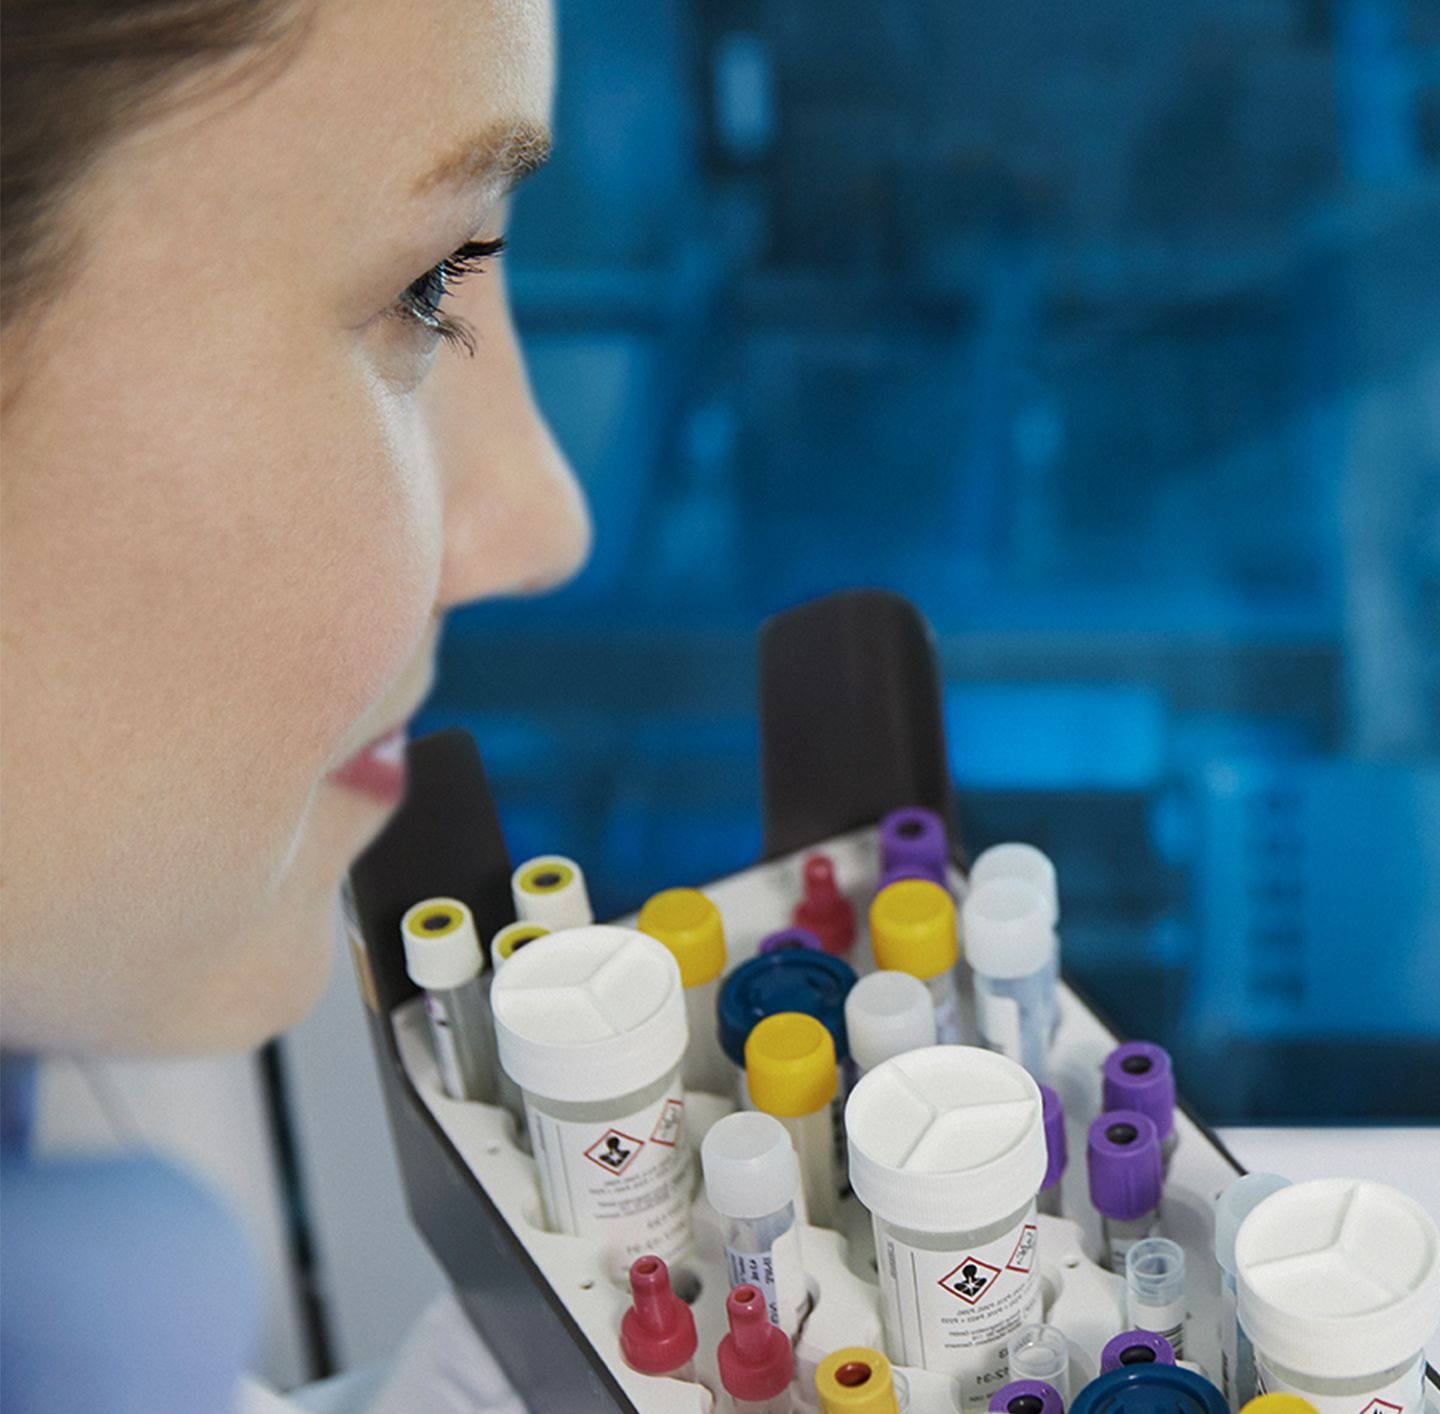 close-up of lab technician's face, consolidation image